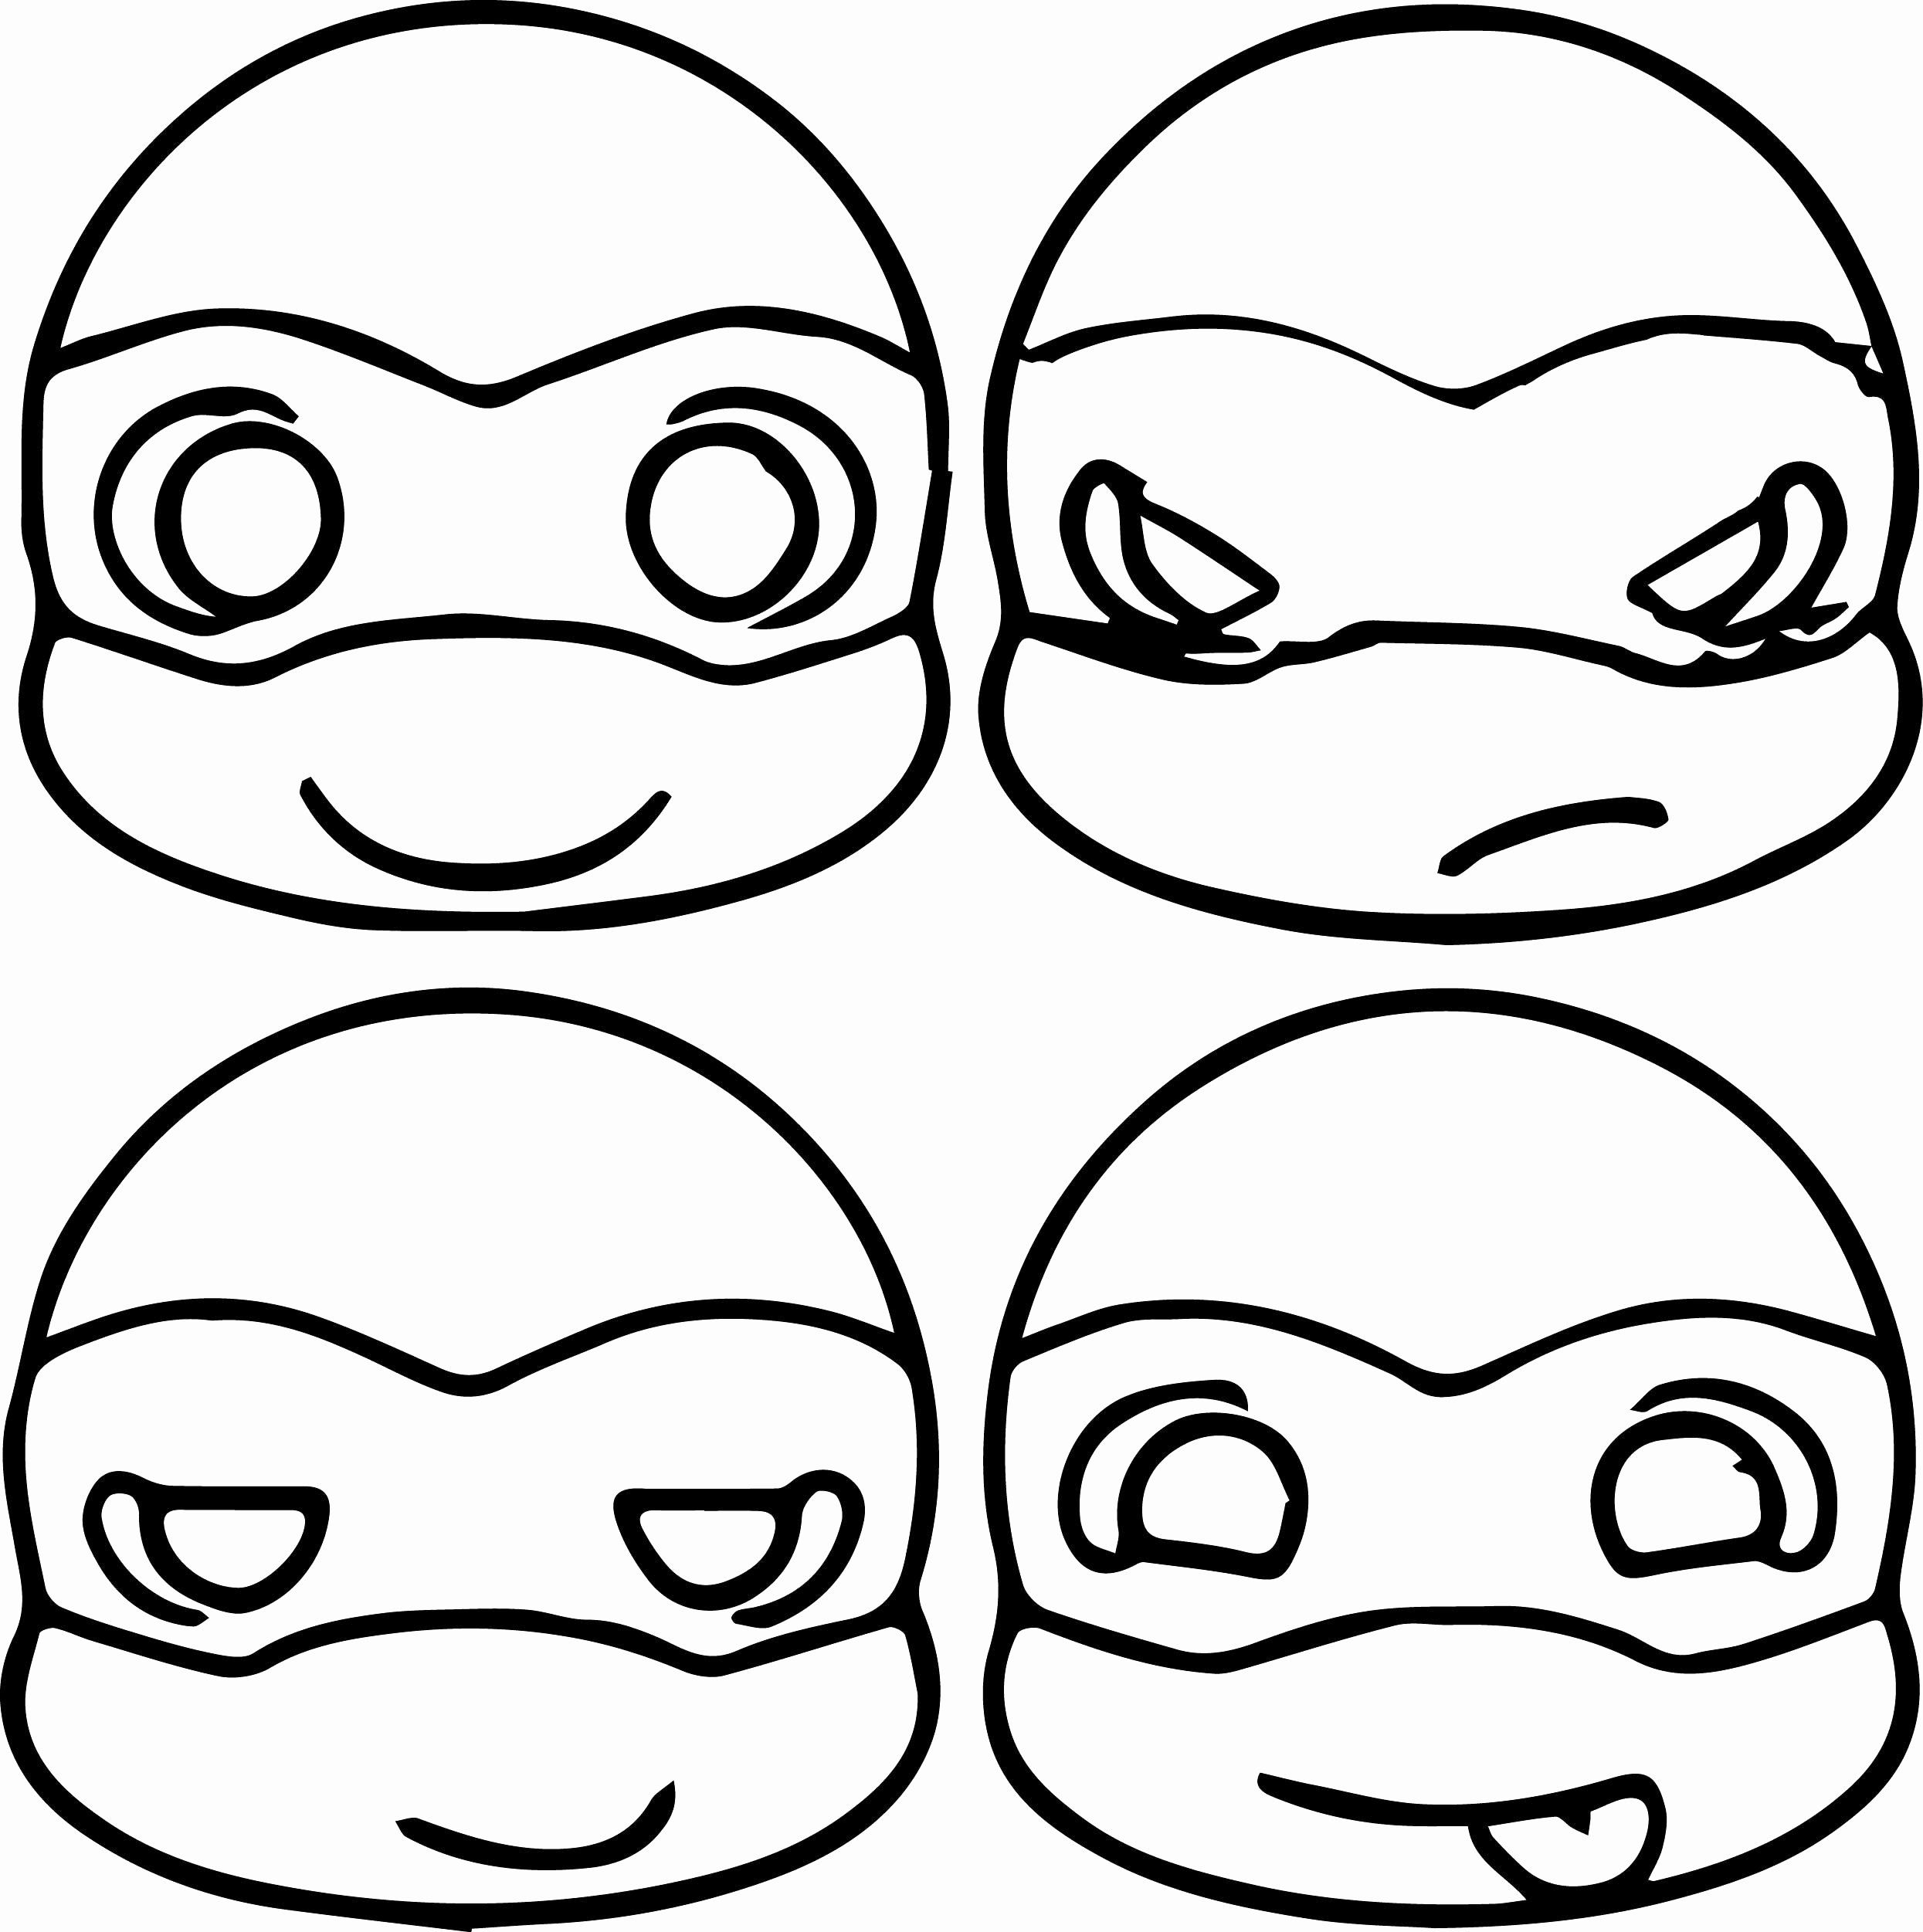 Cute Coloring Pages For Tweens Beautiful Coloring Turtle To Color Ninja Coloring Games Turtle Coloring Pages Ninja Turtle Coloring Pages Cute Coloring Pages